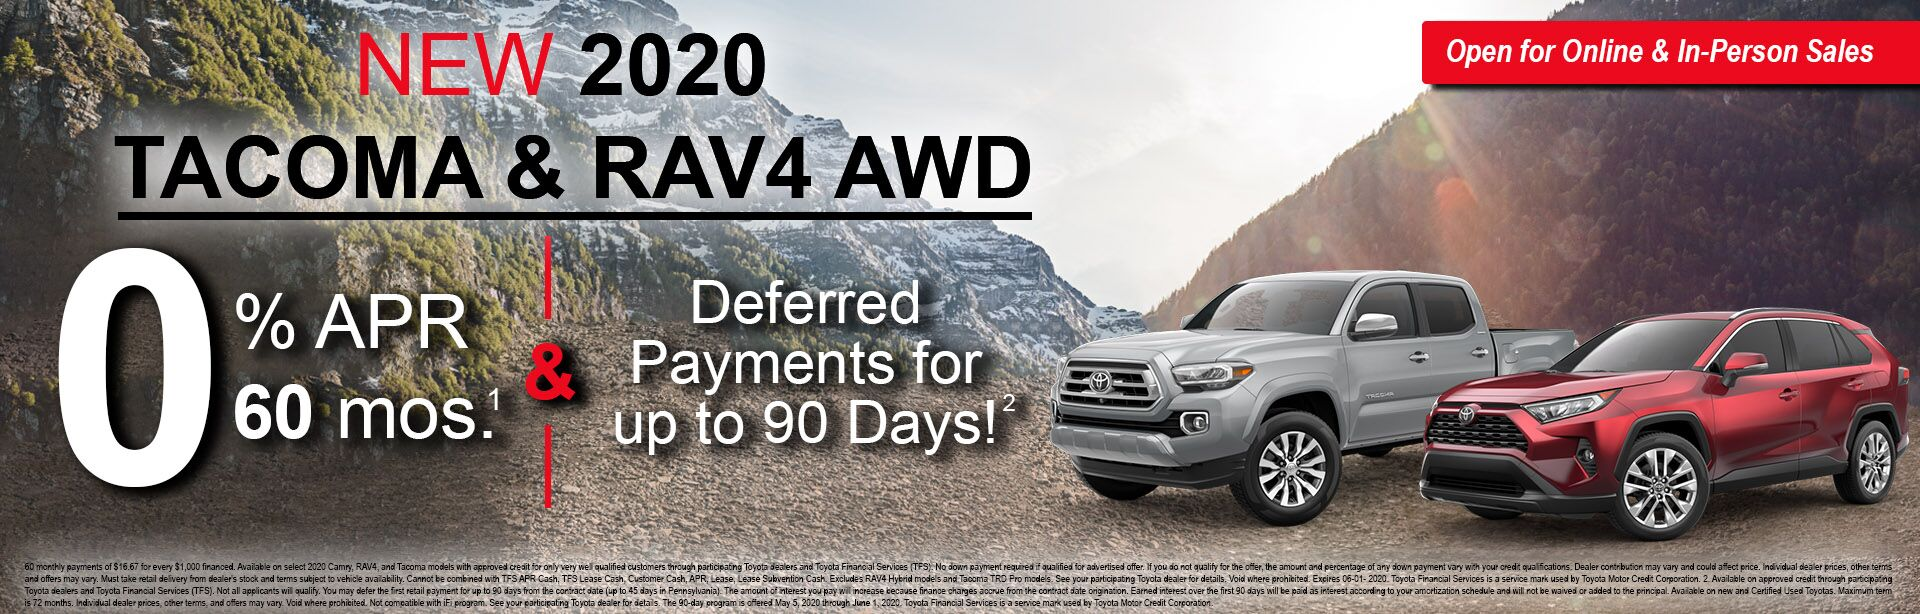 Tacoma & RAV APR Offer